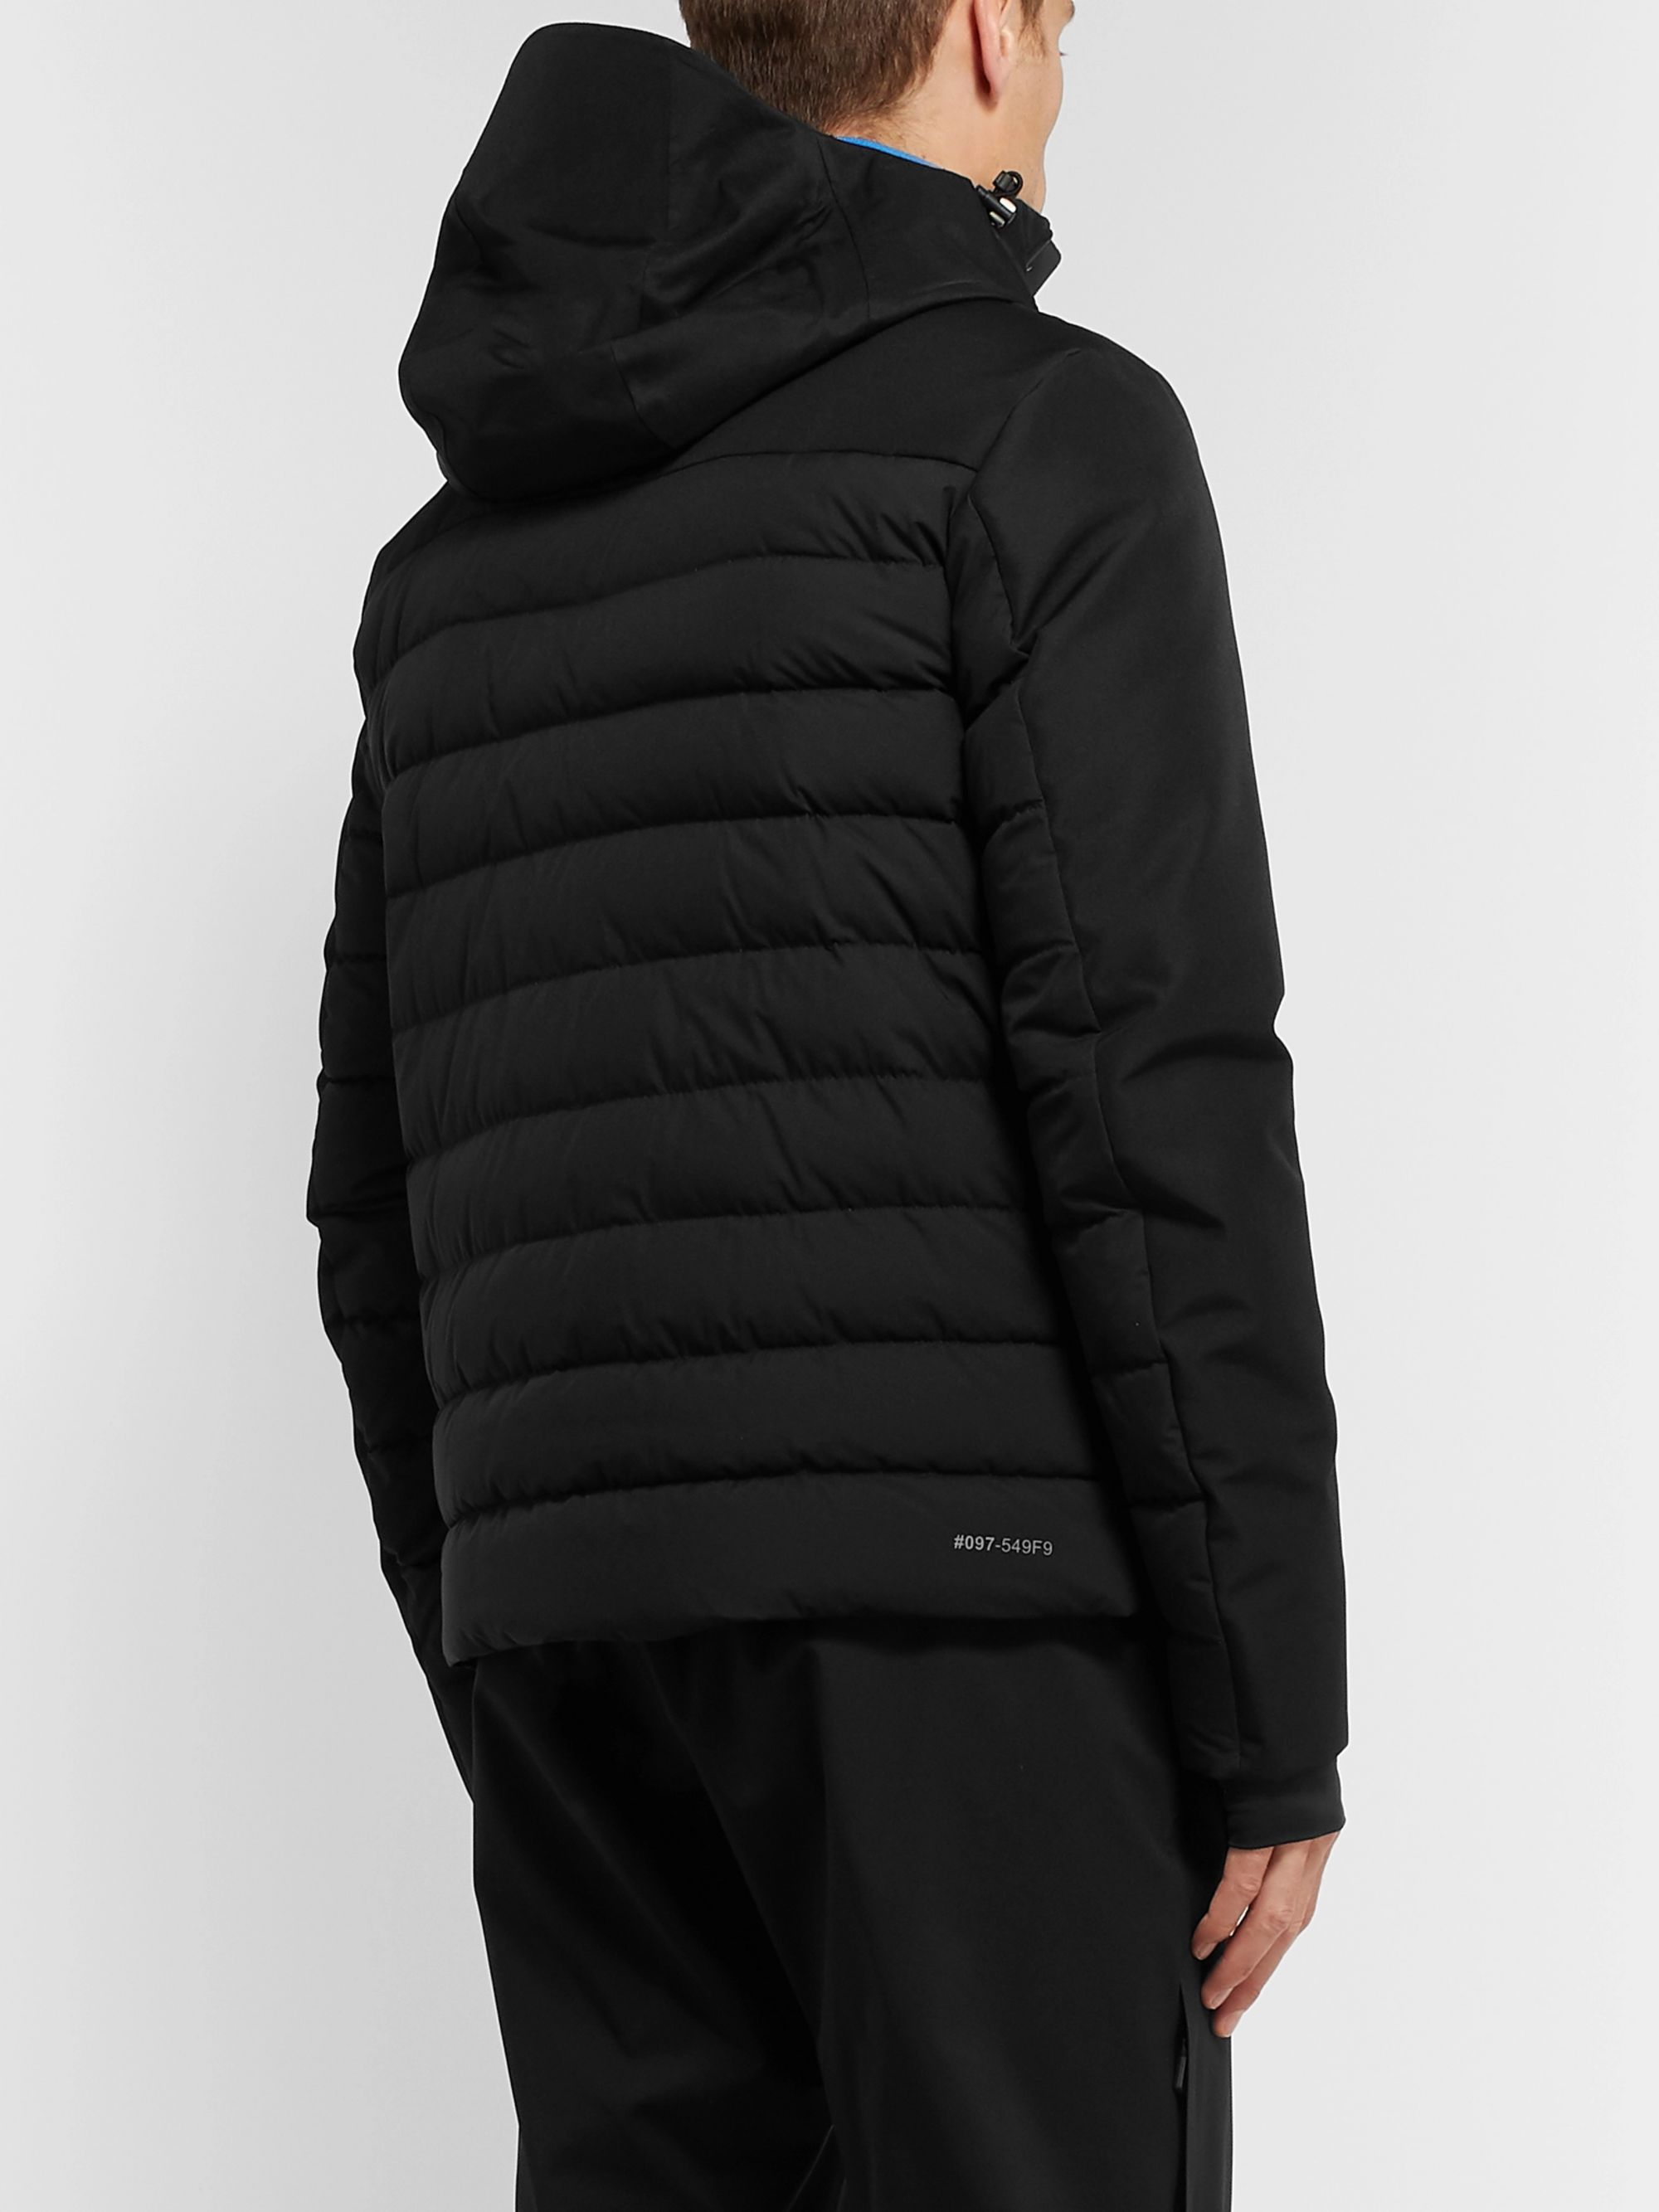 Moncler Grenoble Bessans Quilted GORE-TEX Hooded Down Ski Jacket